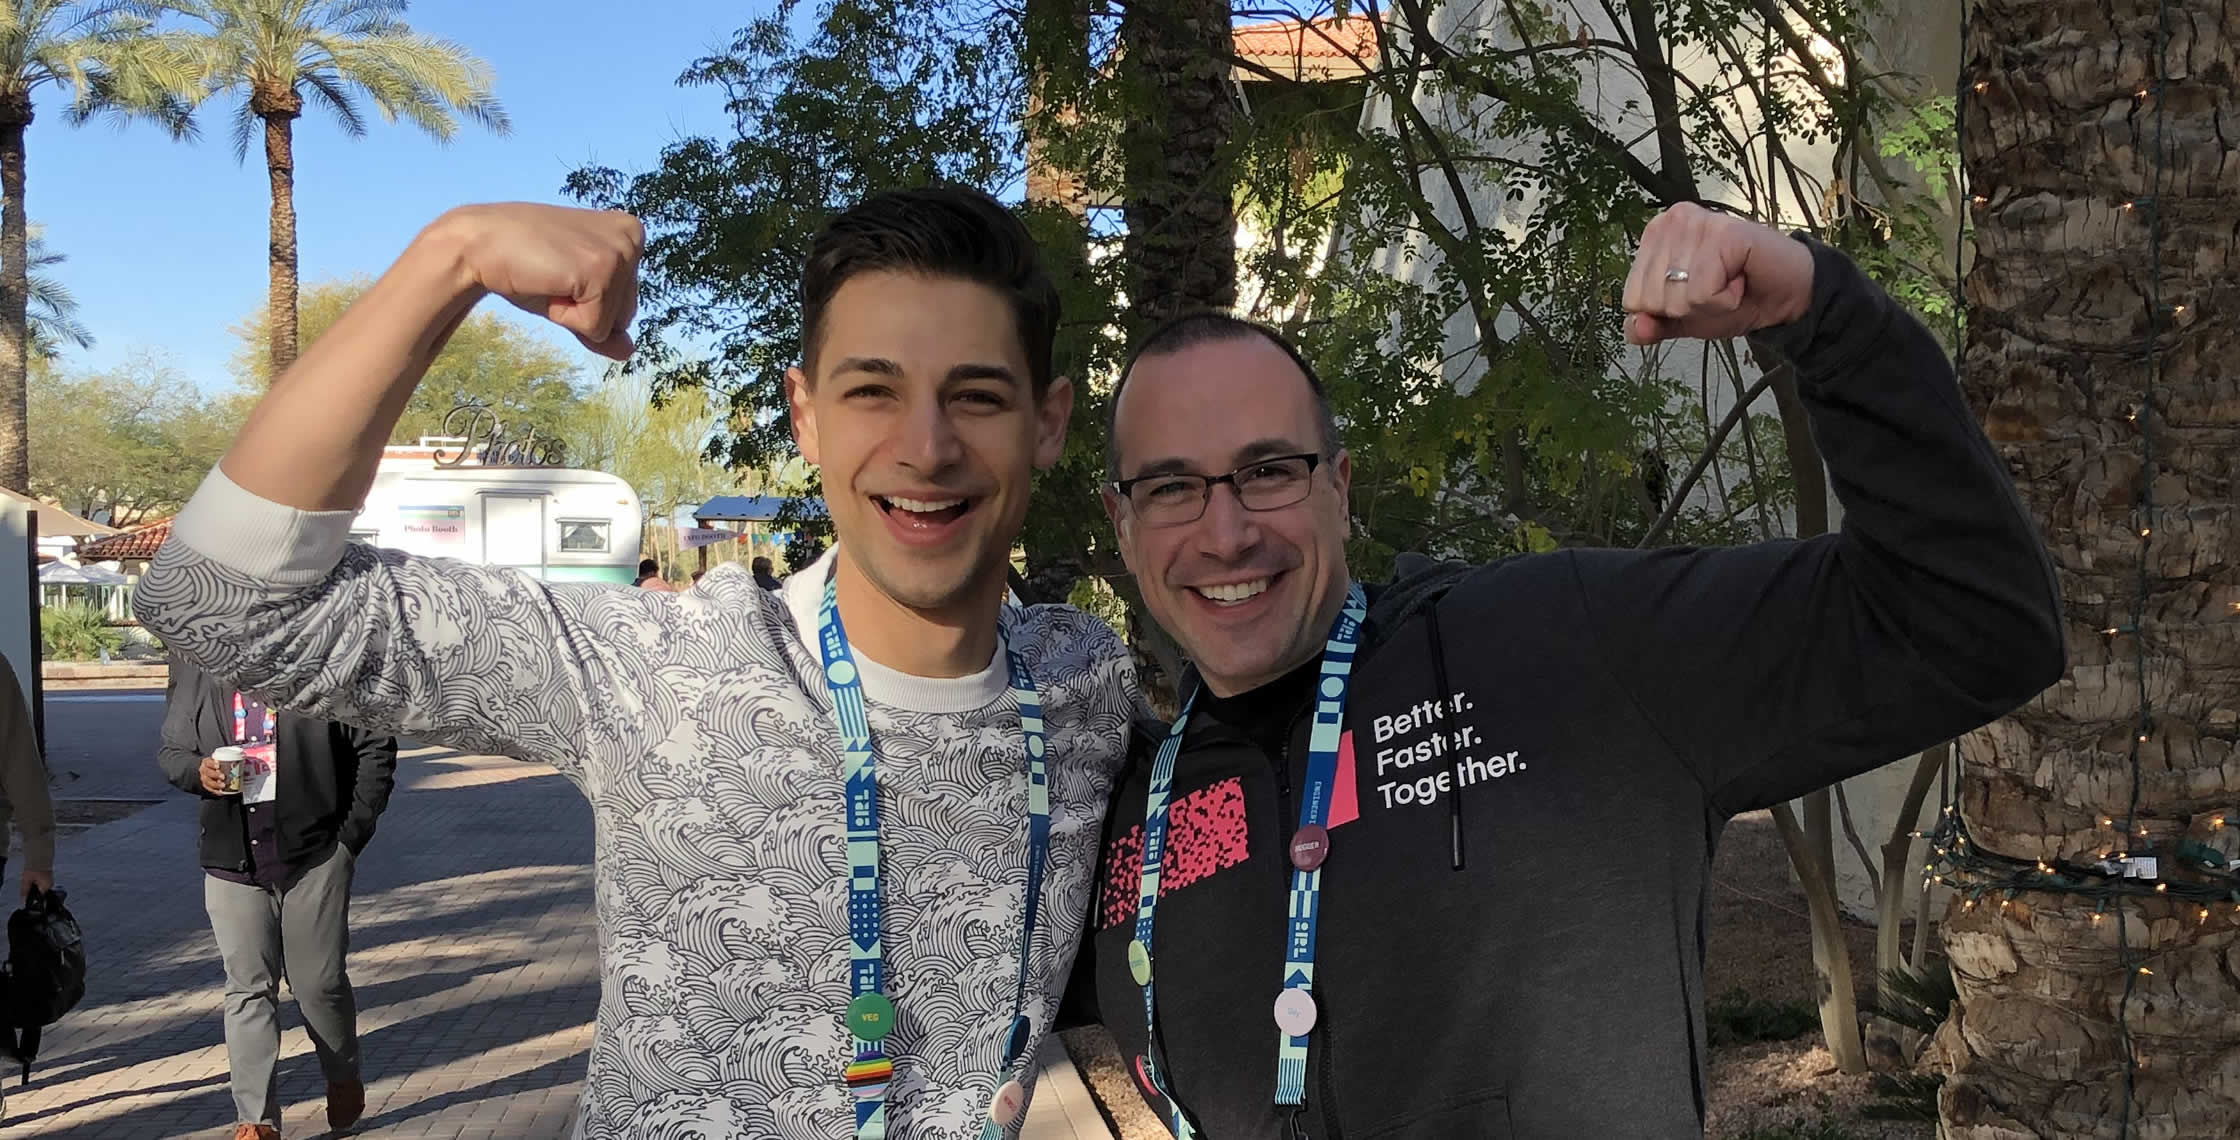 Ben Nadel at InVision In Real Life (IRL) 2019 (Phoenix, AZ) with: Jeremiah Lee